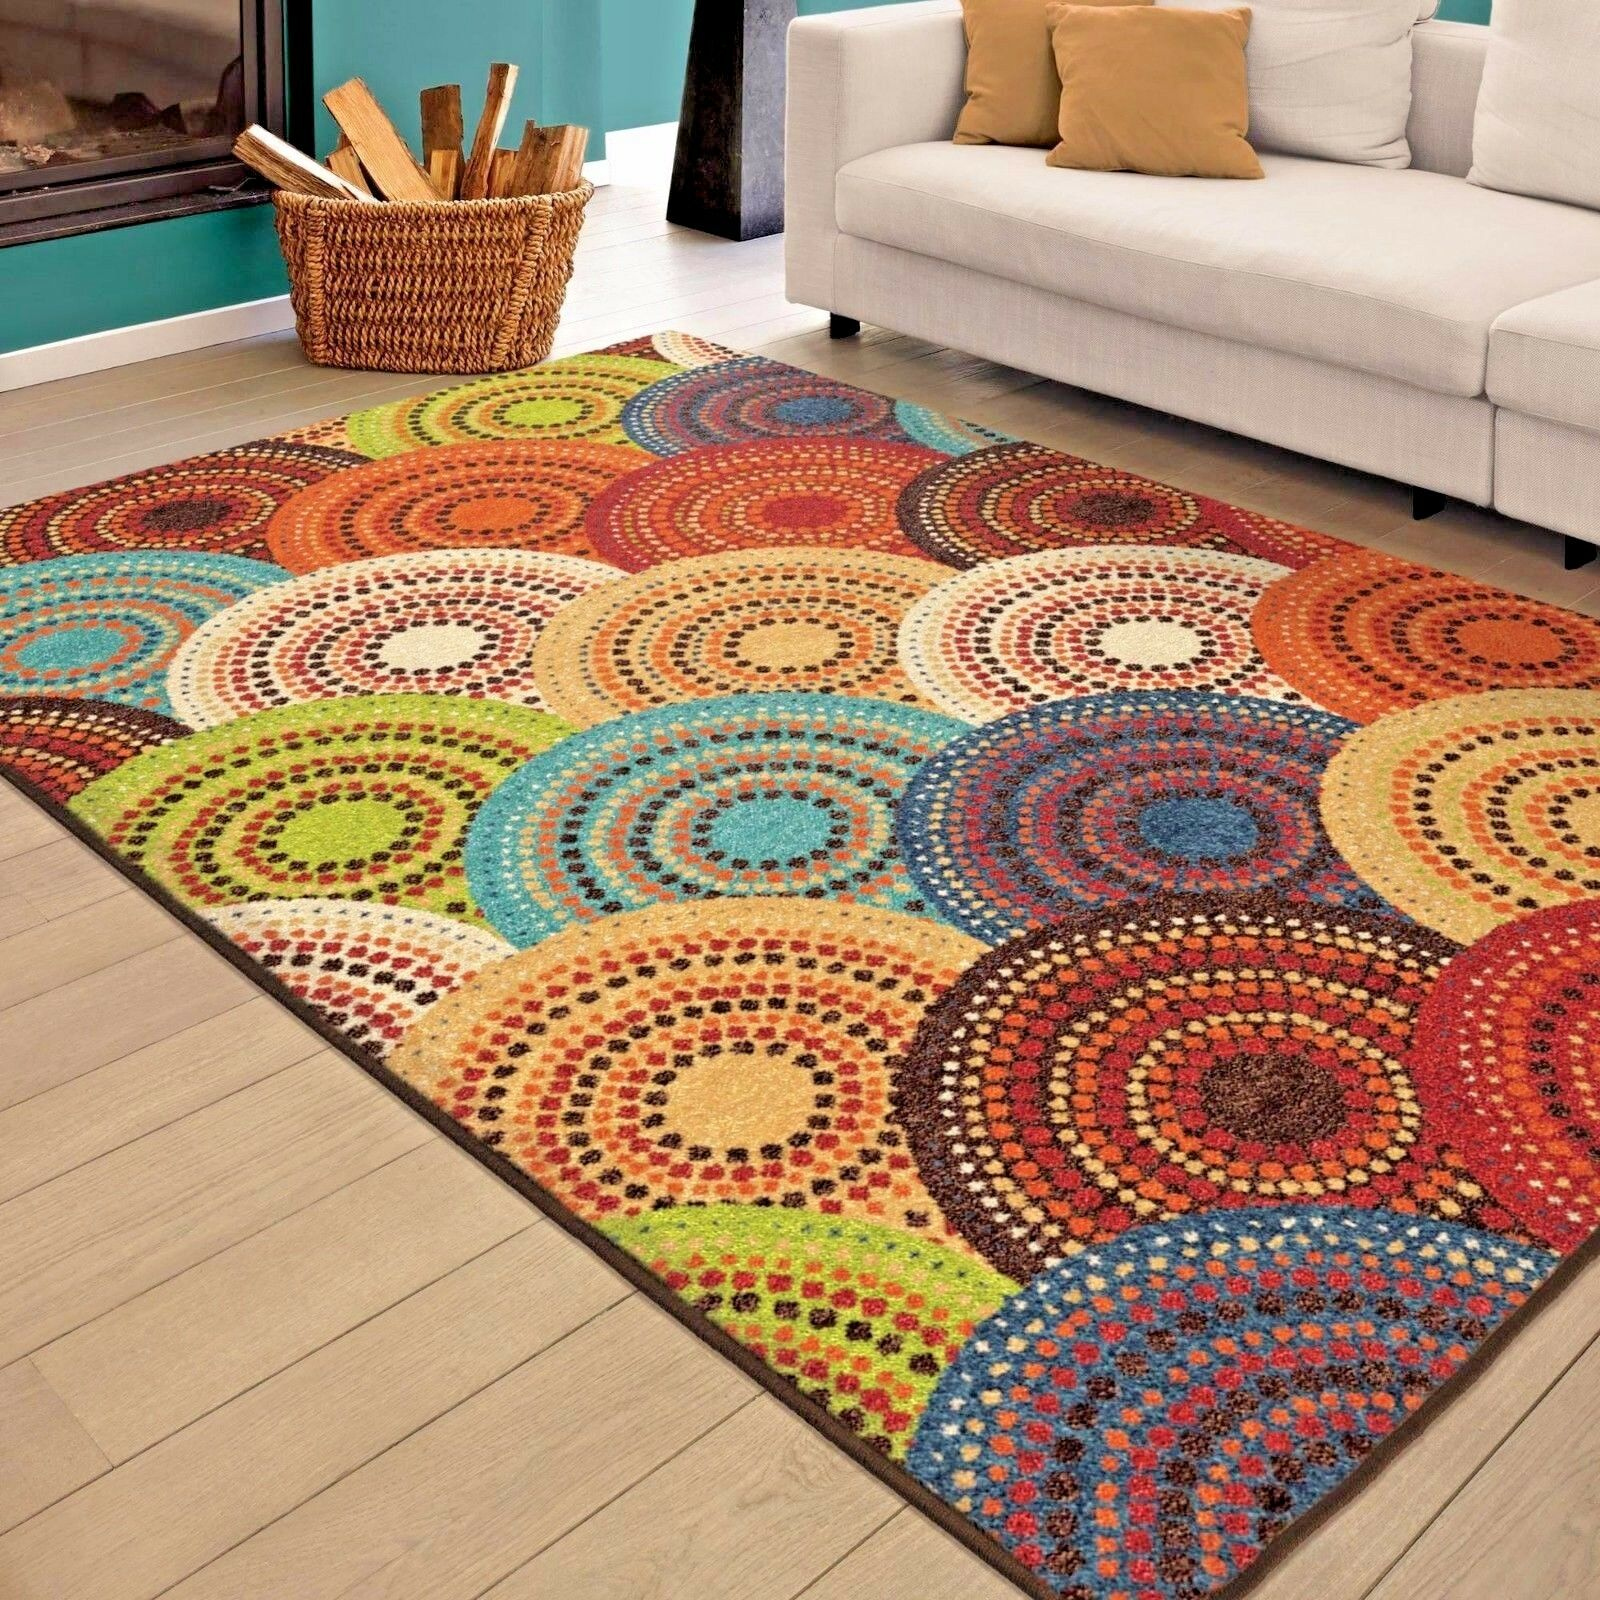 Big Living Room Rugs : Big Carpet Rugs - Carpet Vidalondon